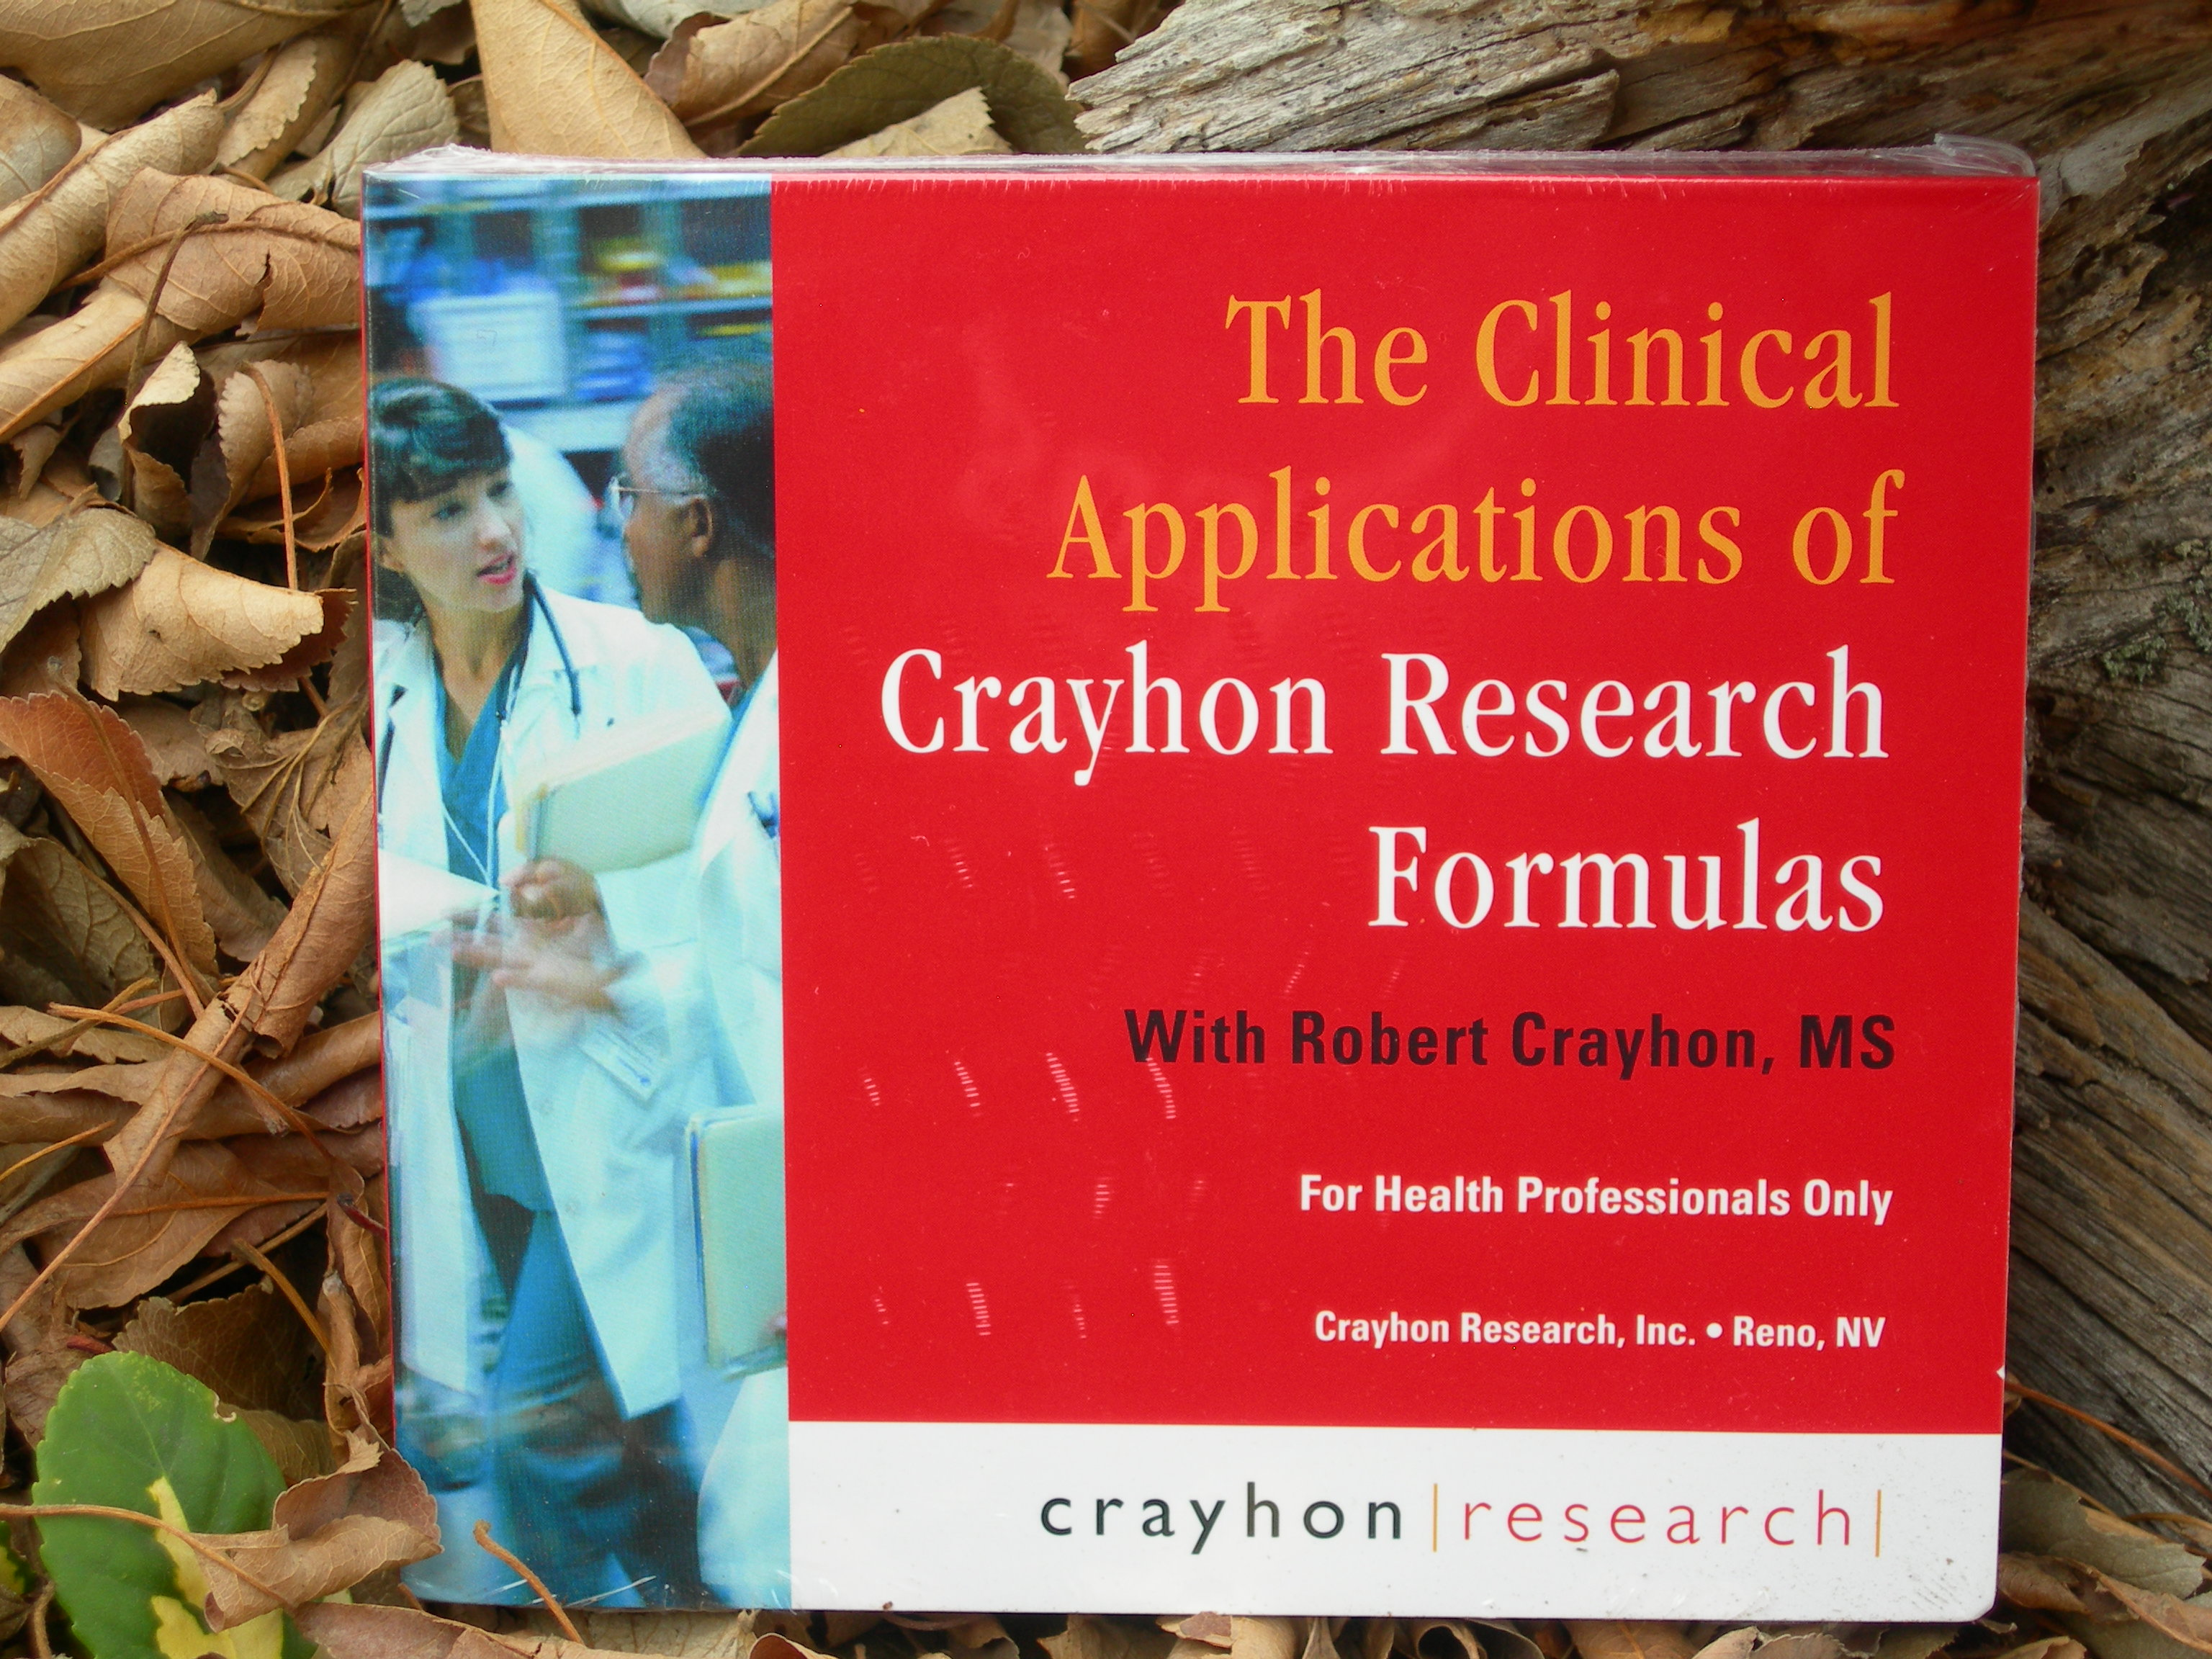 Crayhon Research Formulas